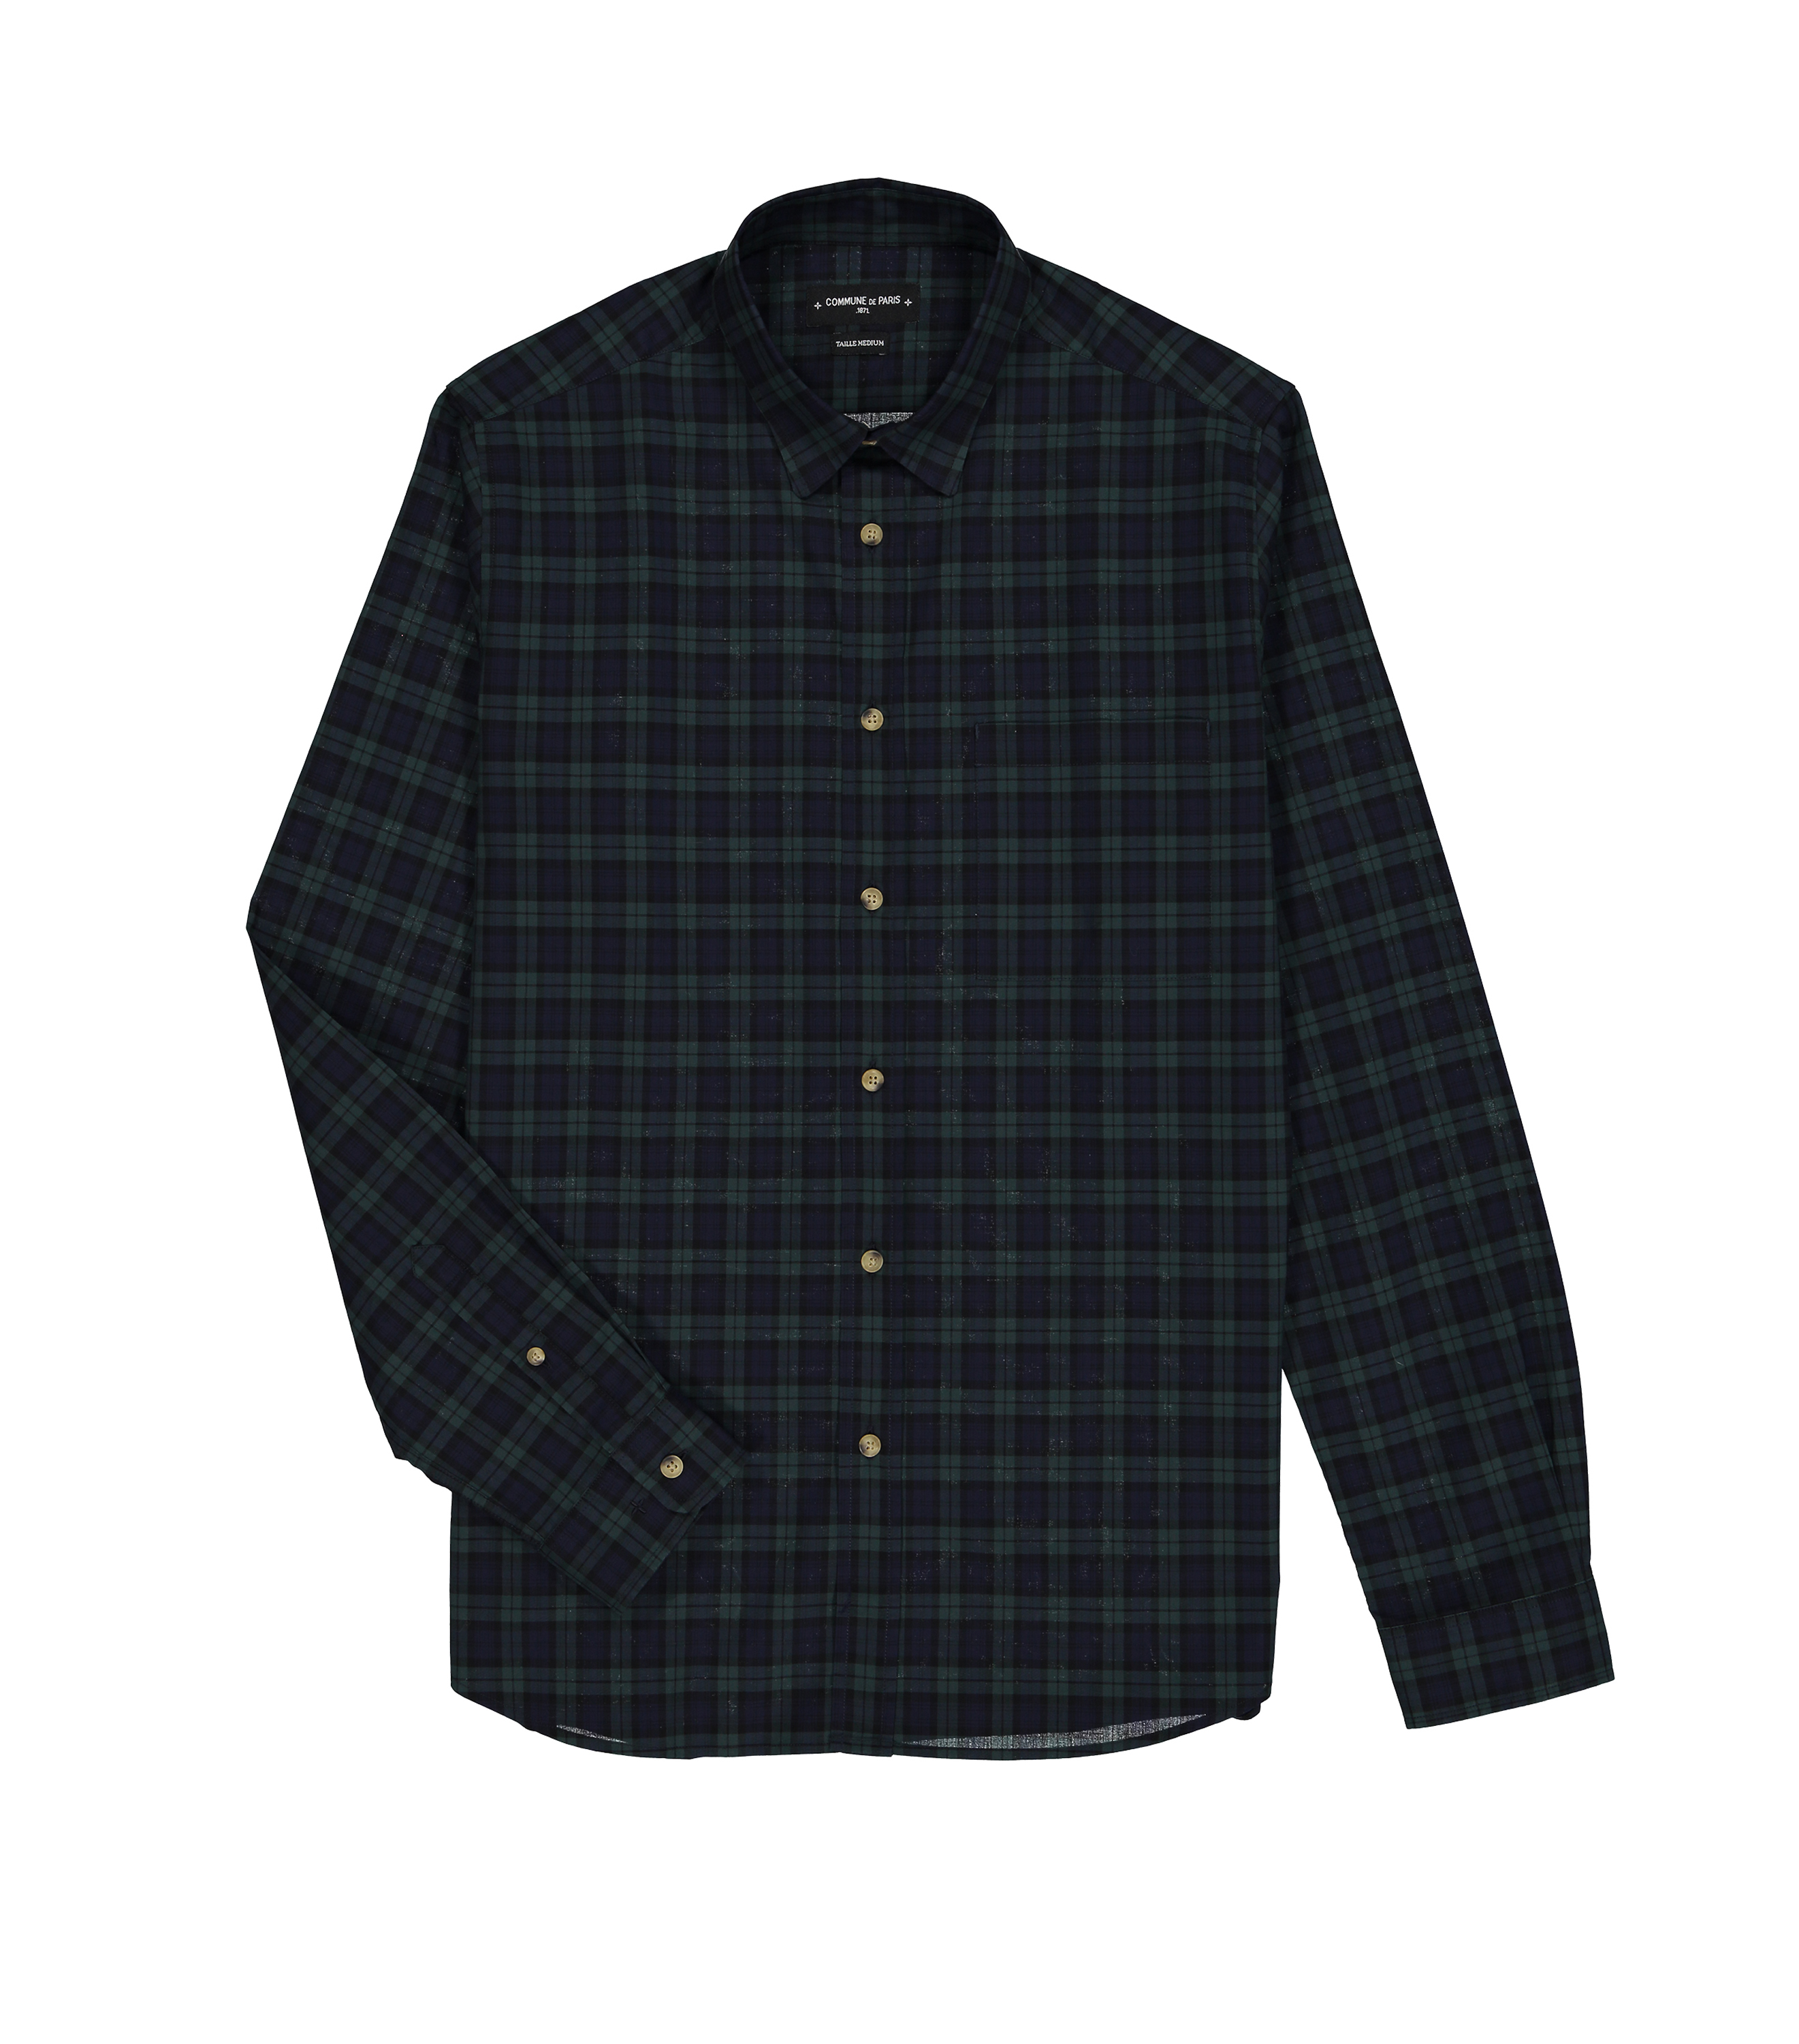 SHIRT ROSSEL - Scottish green